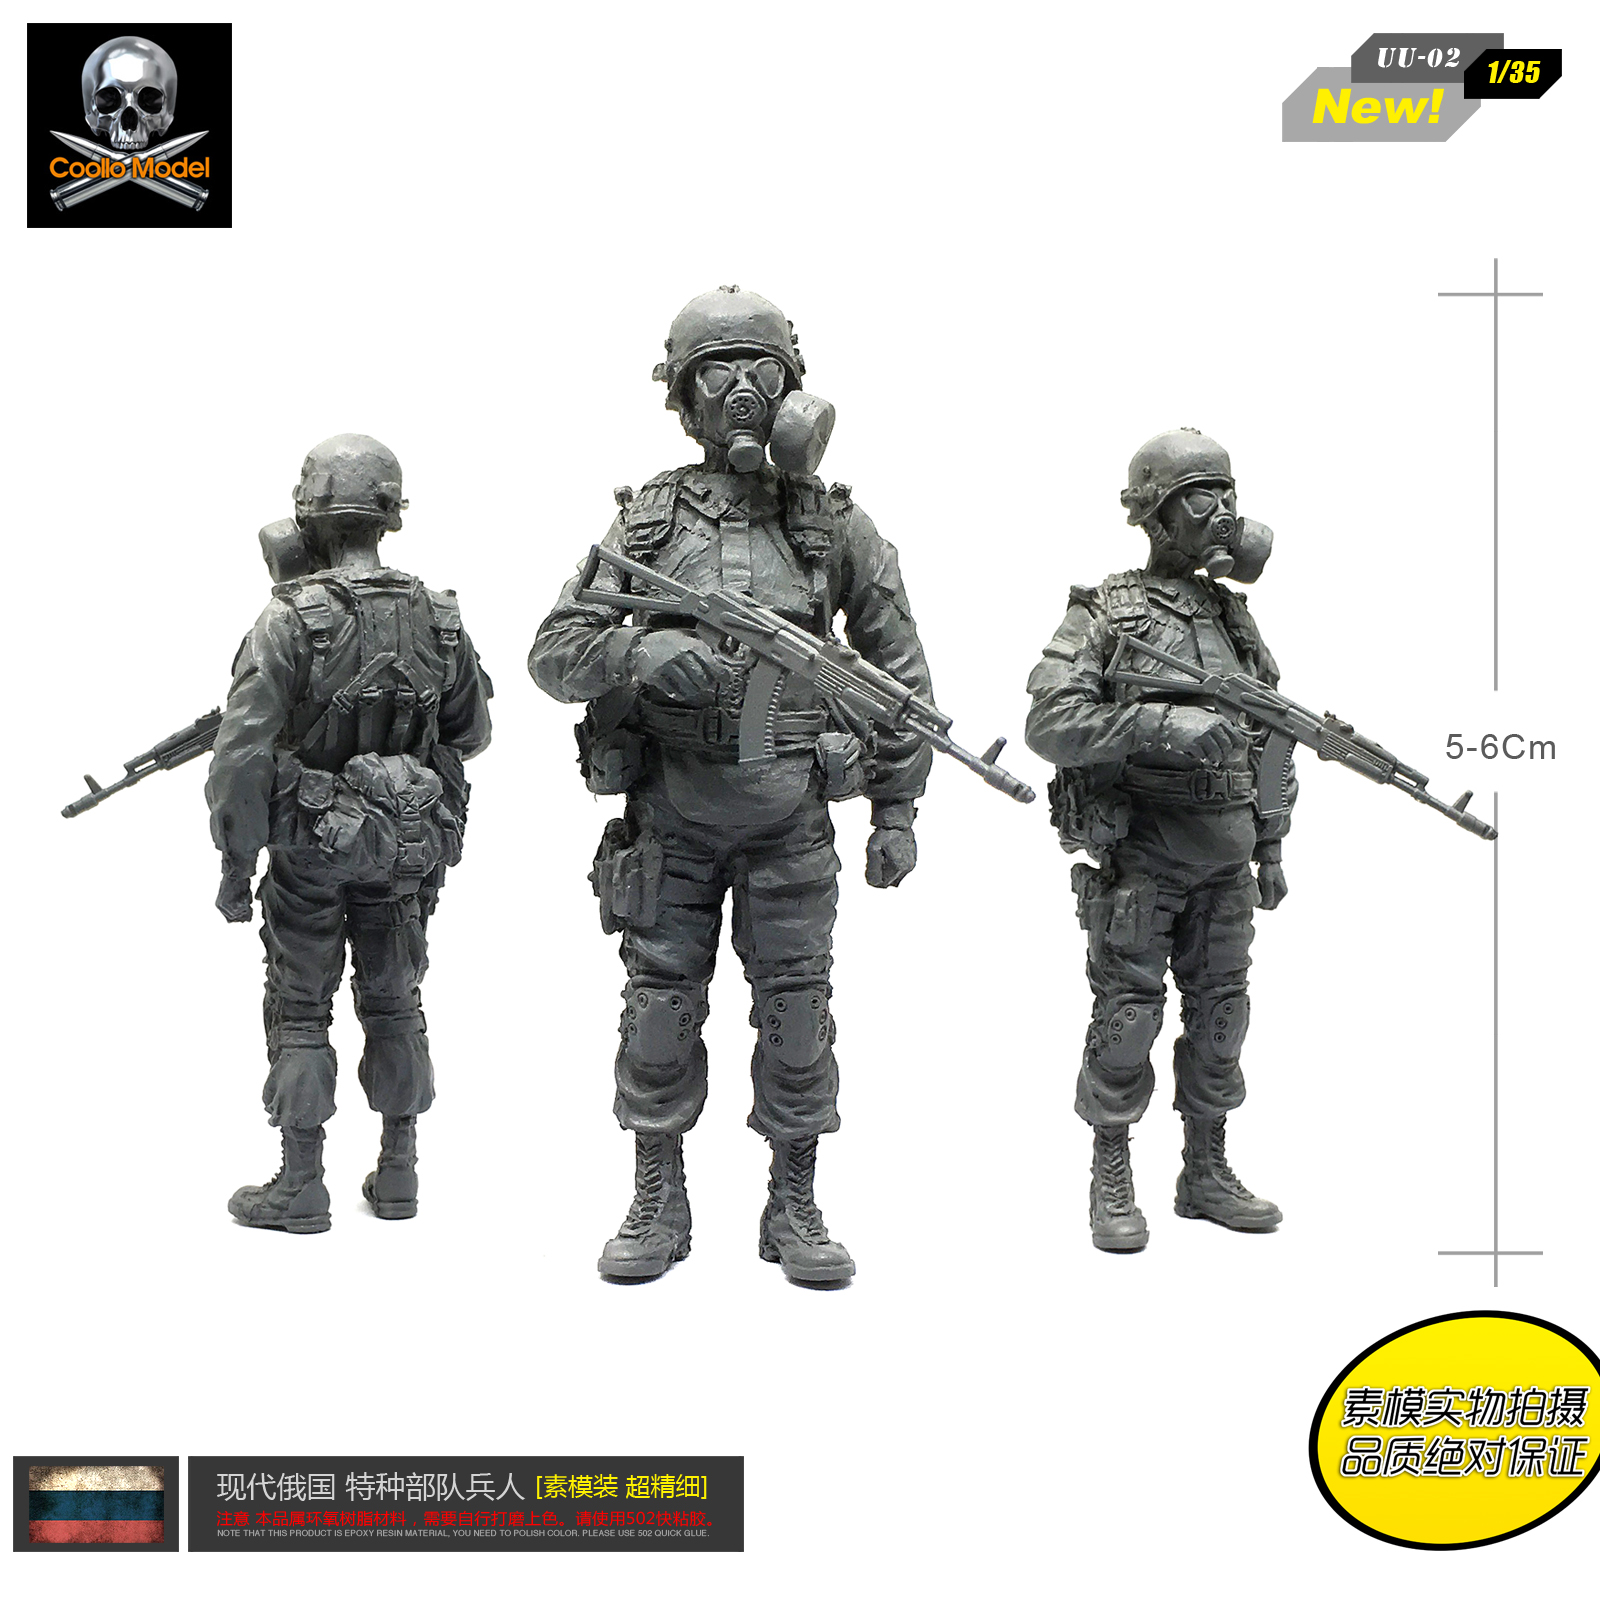 1/35 Figure Kits Russian Alpha Anti-terrorist Force Resin Soldiers Wear Gas Masks  Self-assembled UU-02